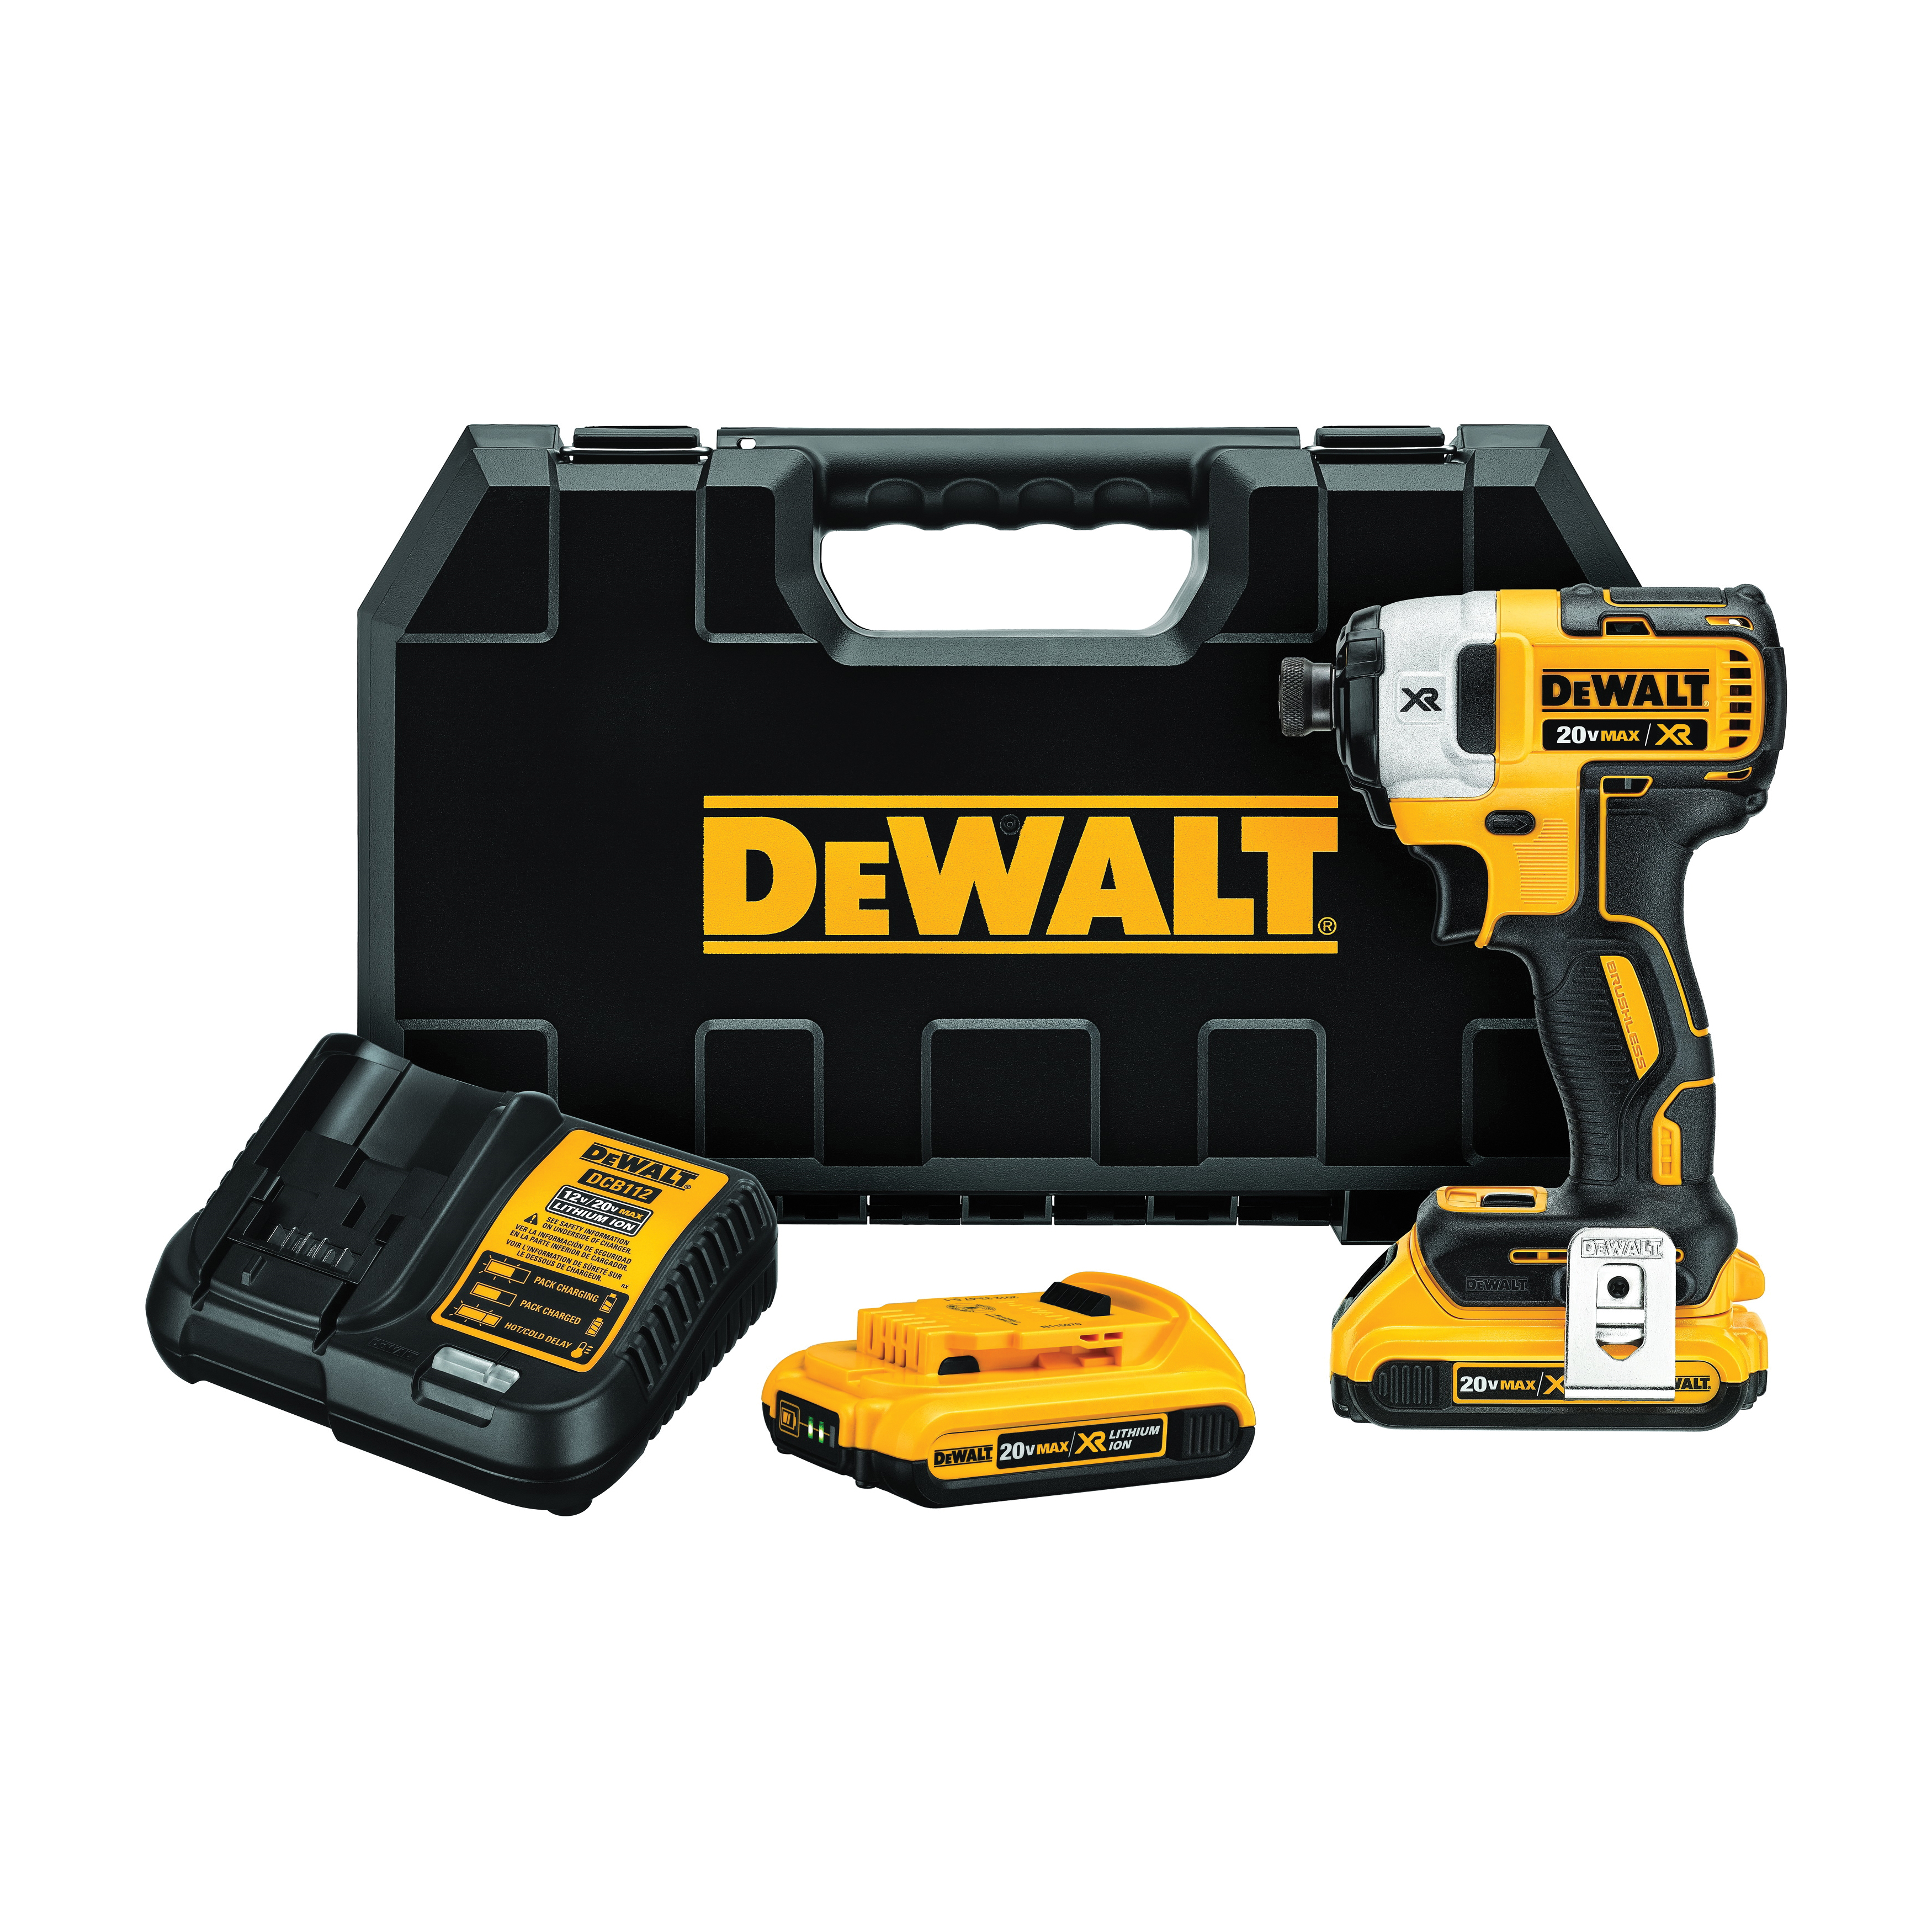 DeWALT® 20V MAX* MATRIX™ XR™ DCF887D2 Compact Lightweight Cordless Impact Driver Kit, 1/4 in Quick-Release Drive, 3600 ipm, 1825 in-lb Torque, 20 V, 5.3 in OAL